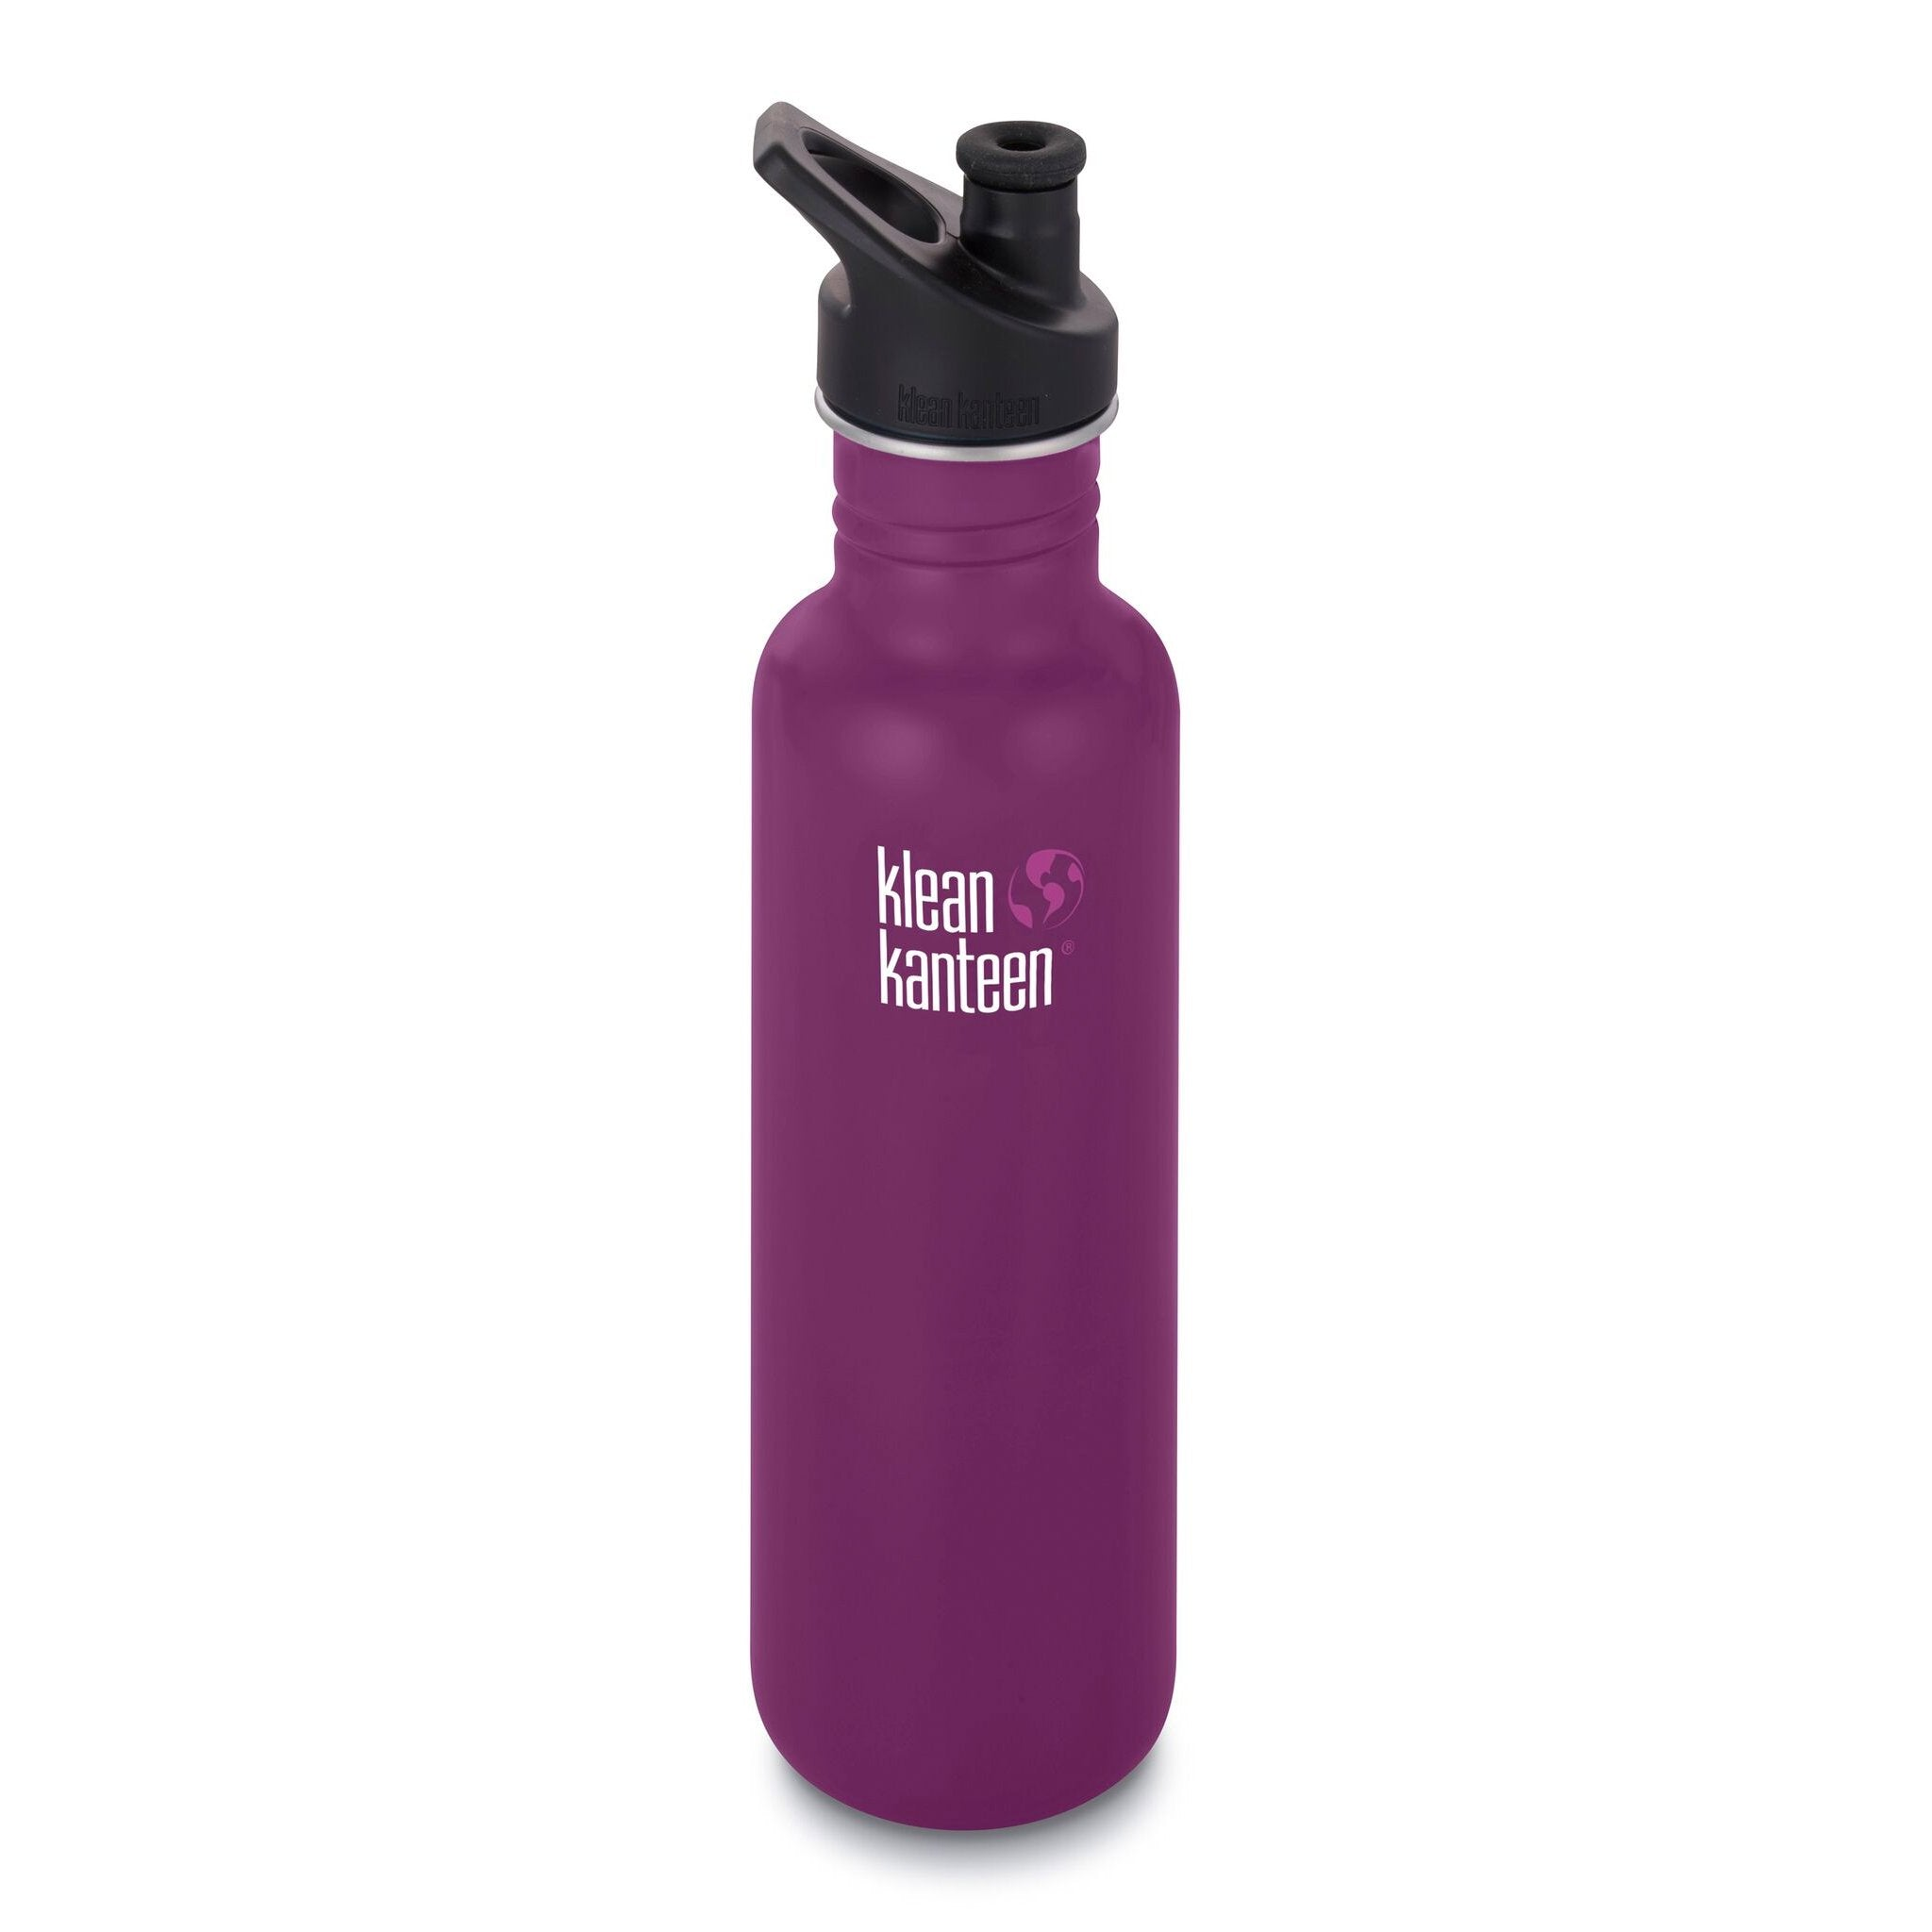 Klean Kanteen Stainless Steel Classic Water Bottle Klean Kanteen Water Bottles 800ml 27oz / Winter Plum at Little Earth Nest Eco Shop